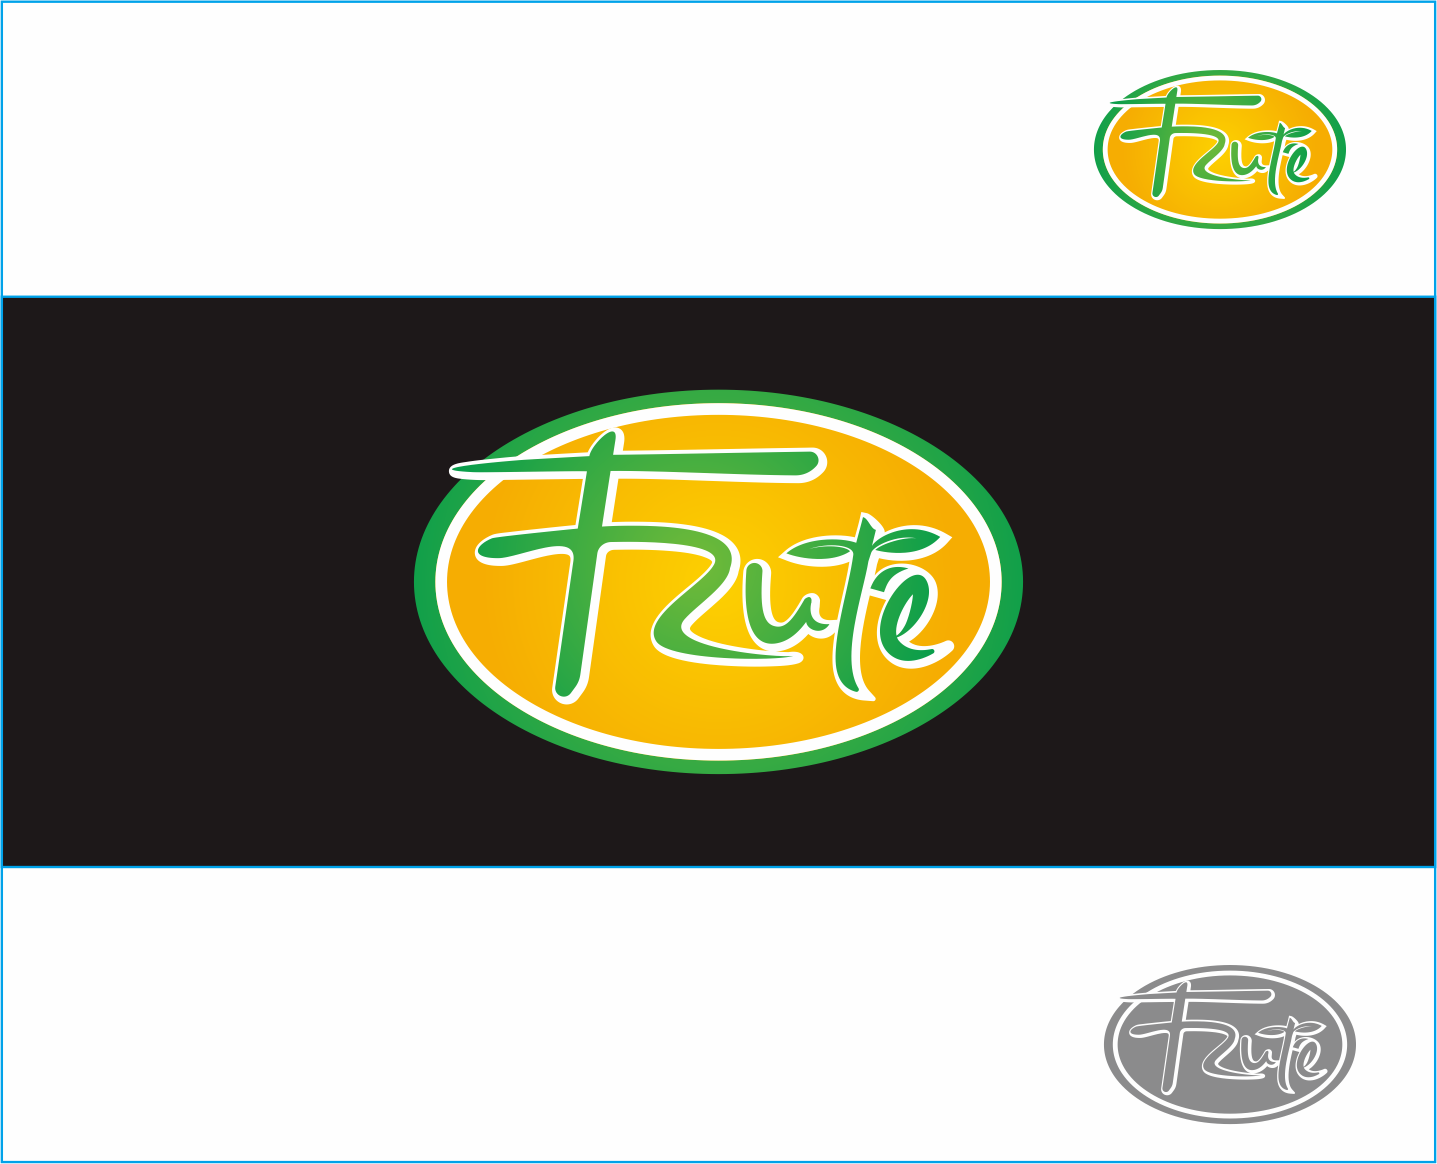 Logo Design by Armada Jamaluddin - Entry No. 147 in the Logo Design Contest Imaginative Logo Design for Fruté.